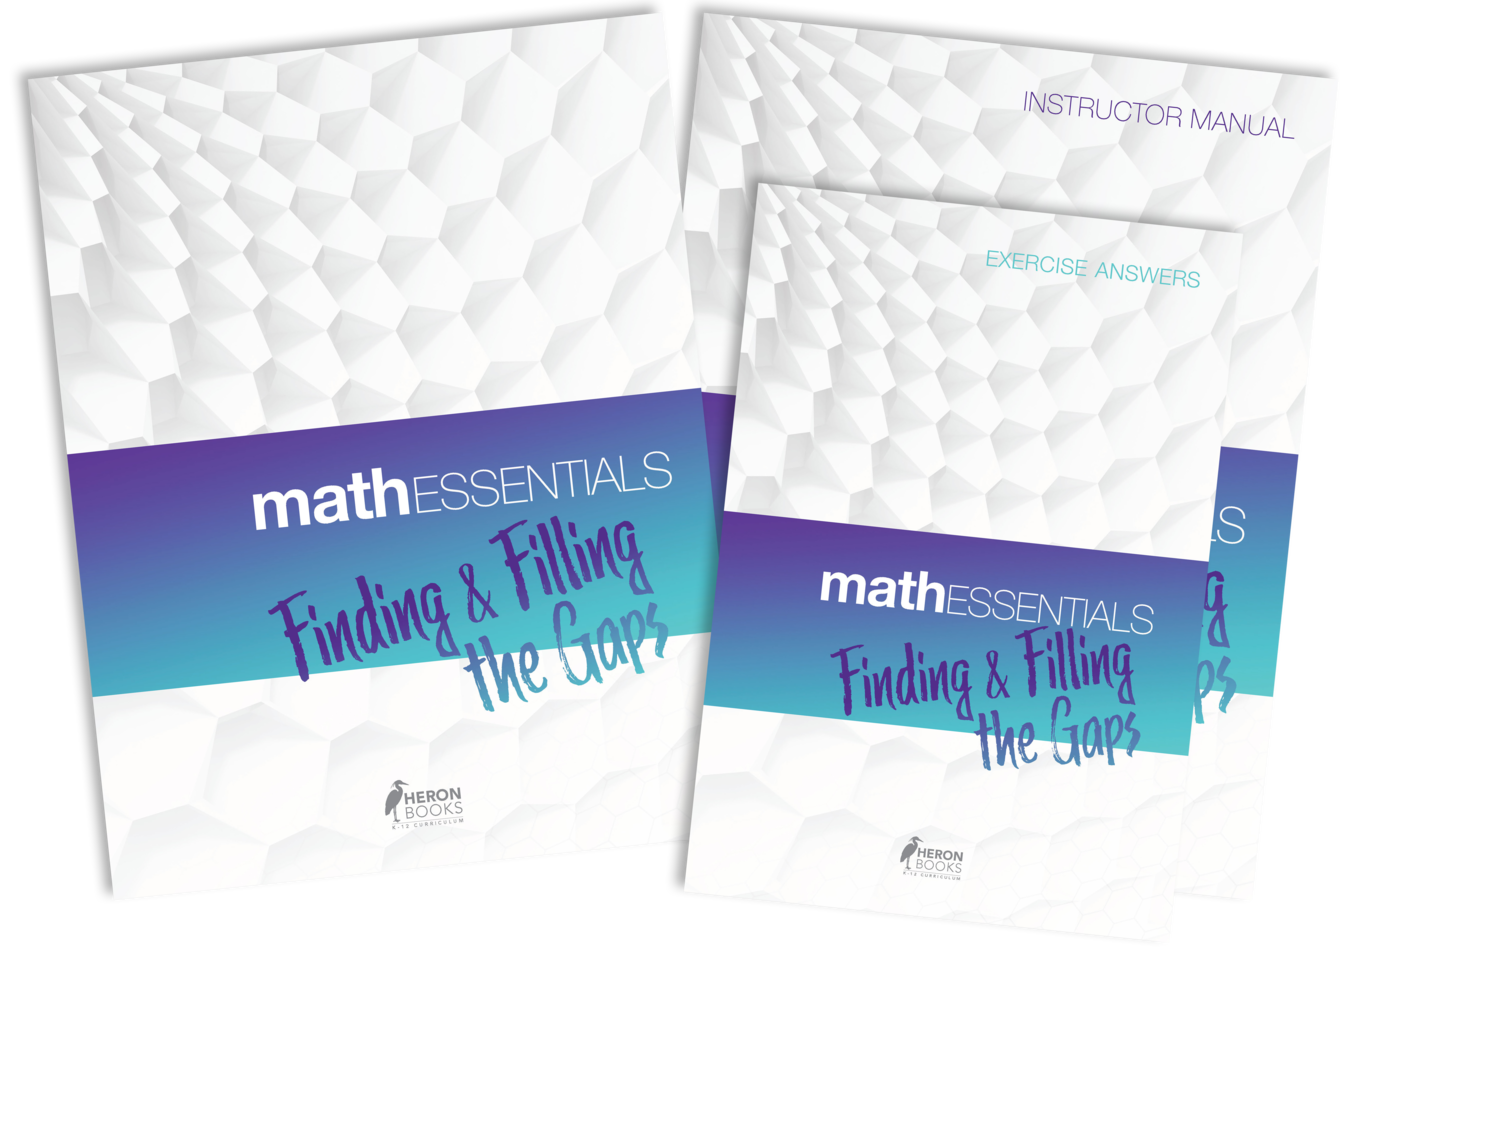 Math Essentials - Finding and Filling the Gaps (the complete package)